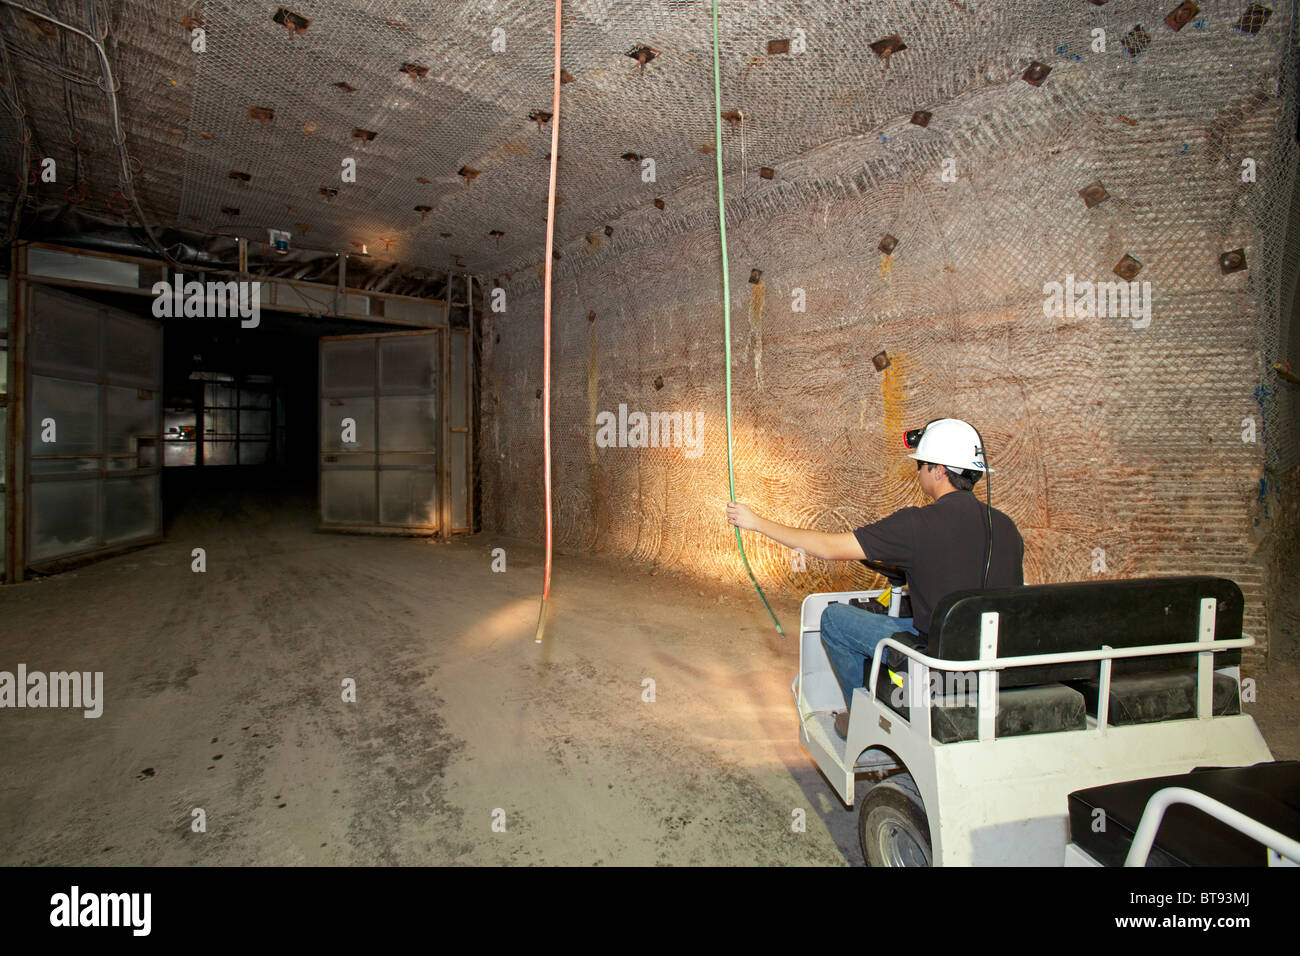 Nuclear Waste Burial at Waste Isolation Pilot Plant - Stock Image